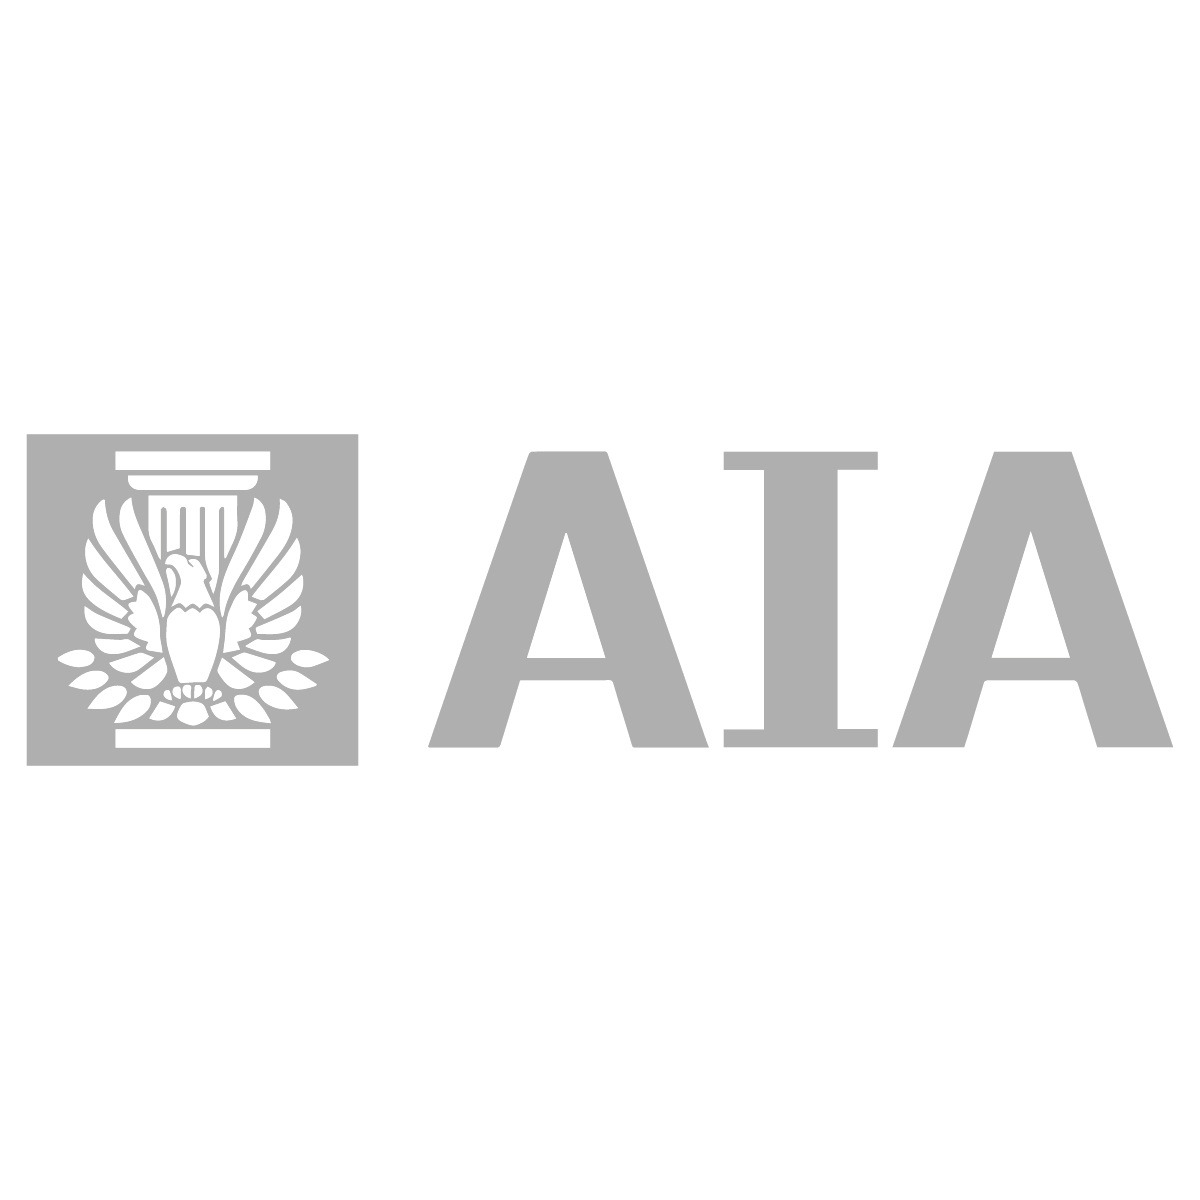 AIA@2x.png